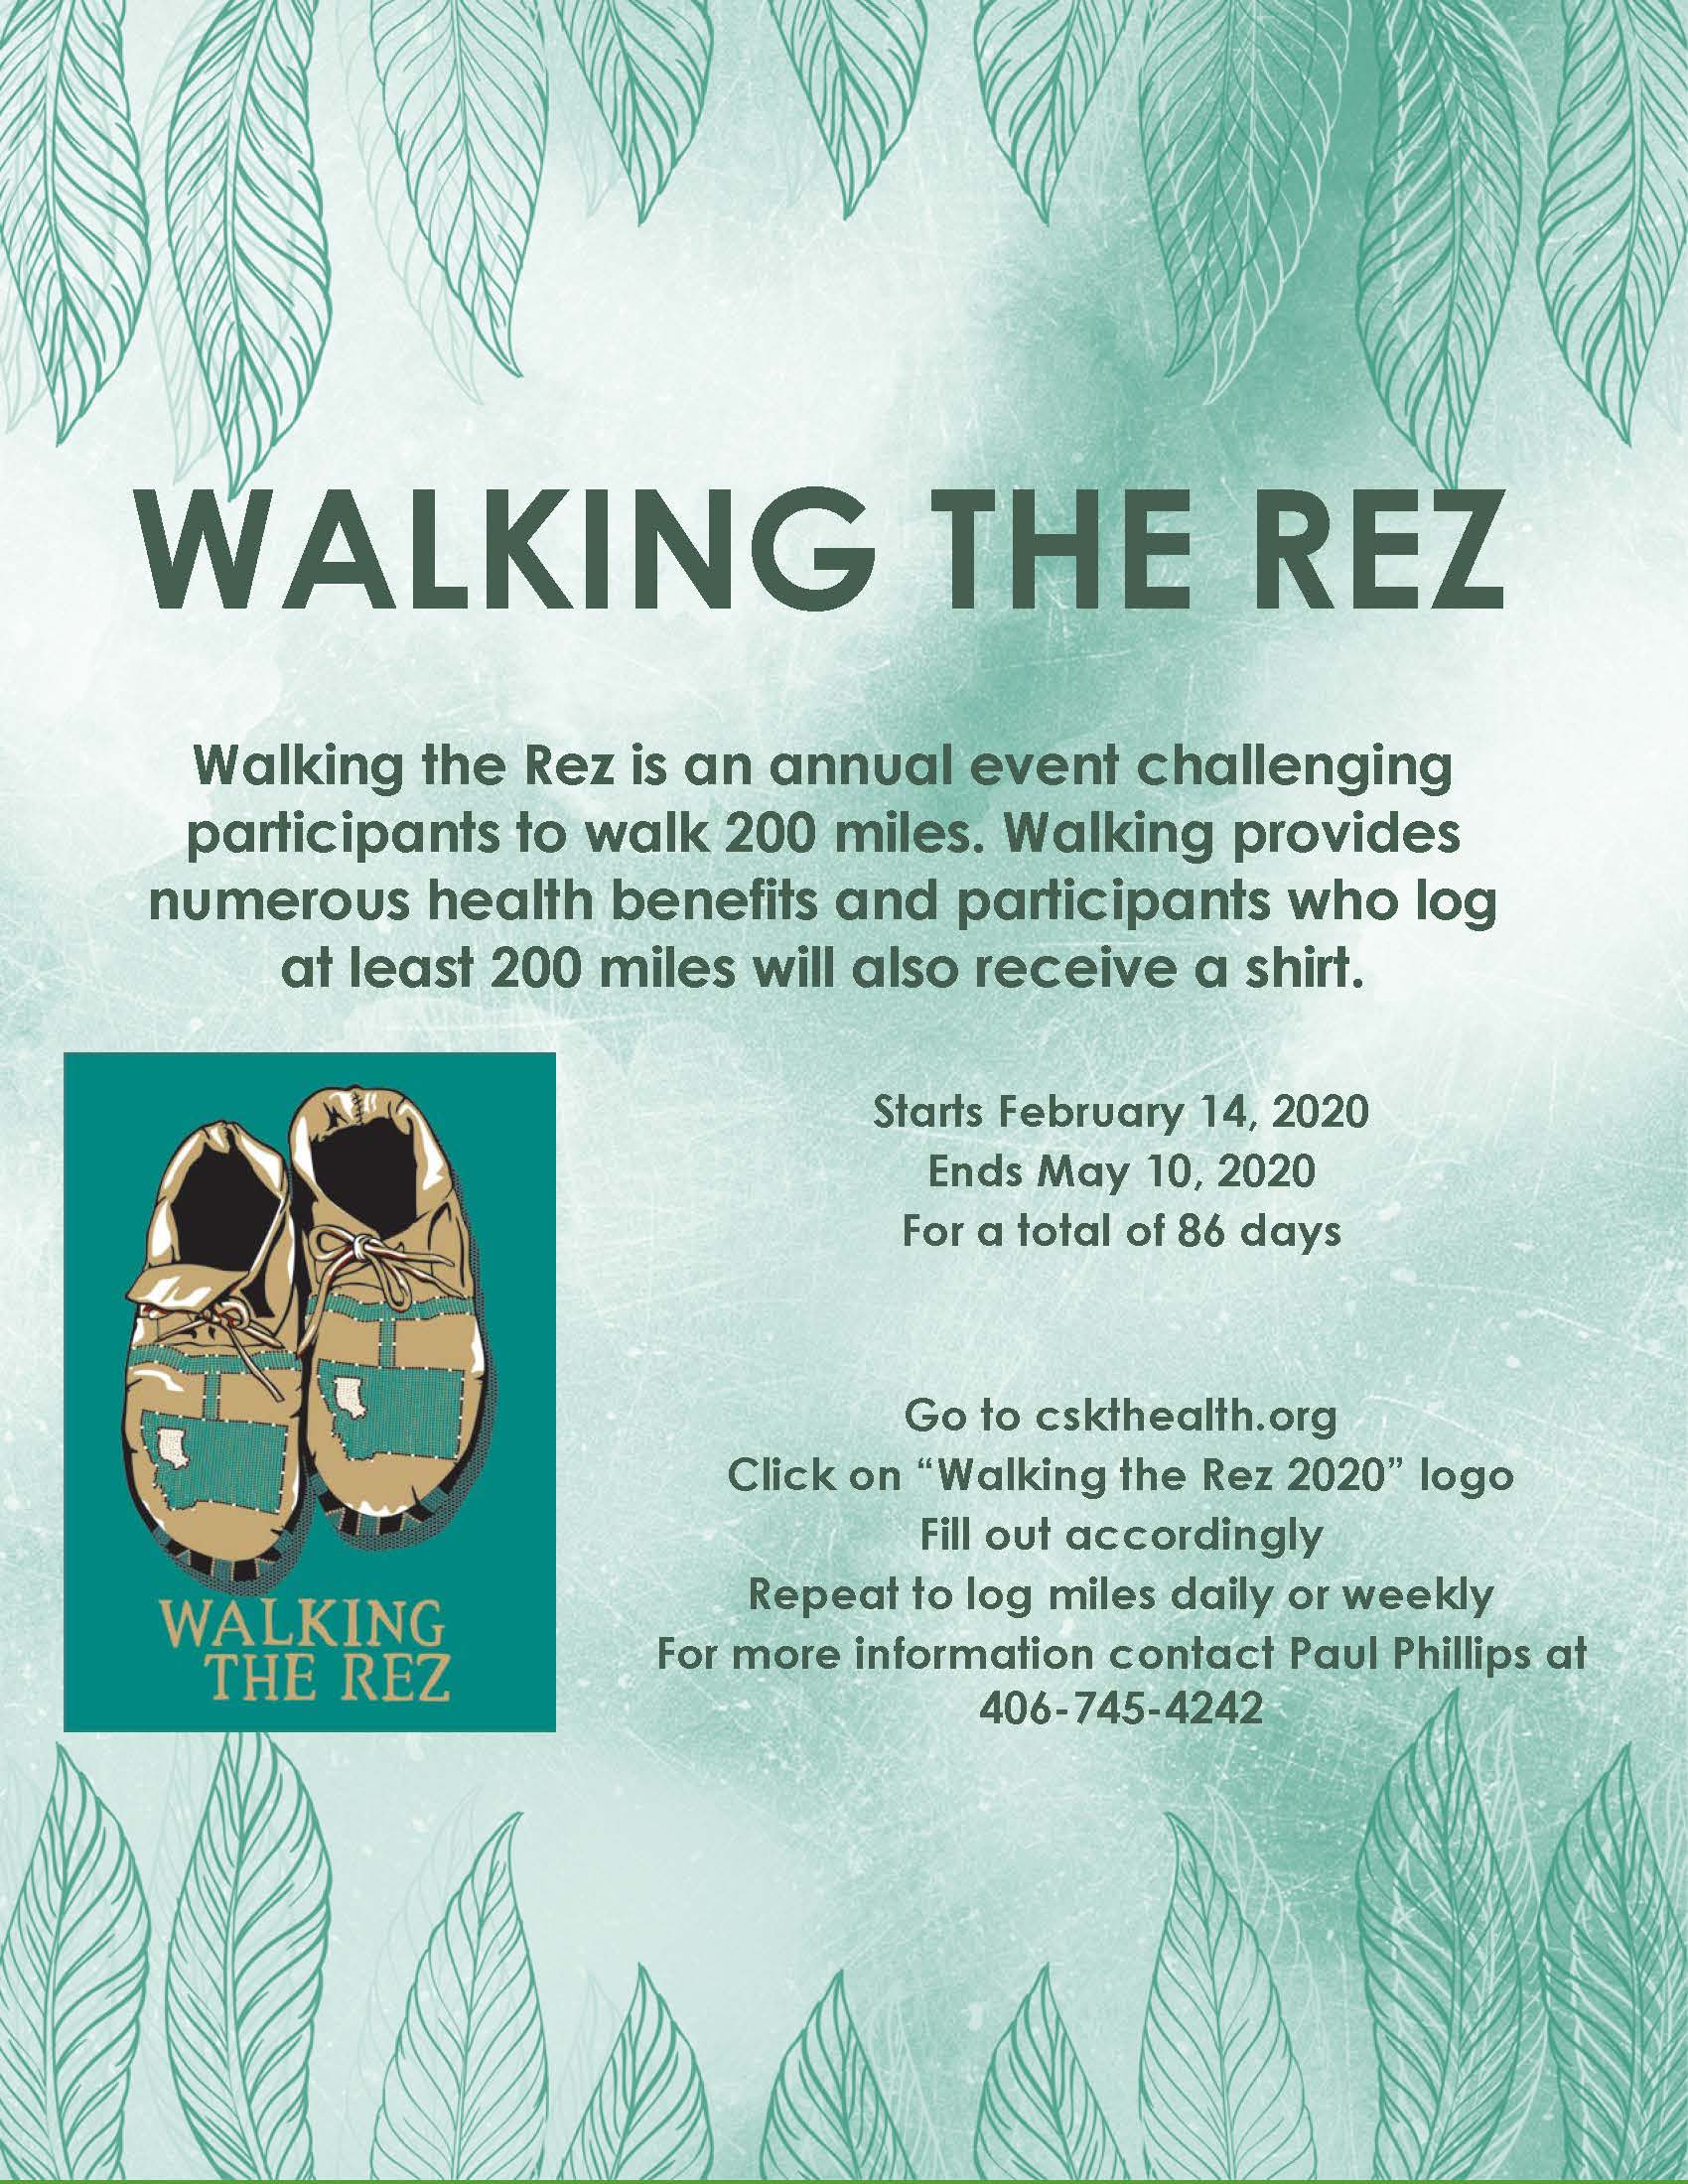 Walking_the_rez_2020_flyer.jpg